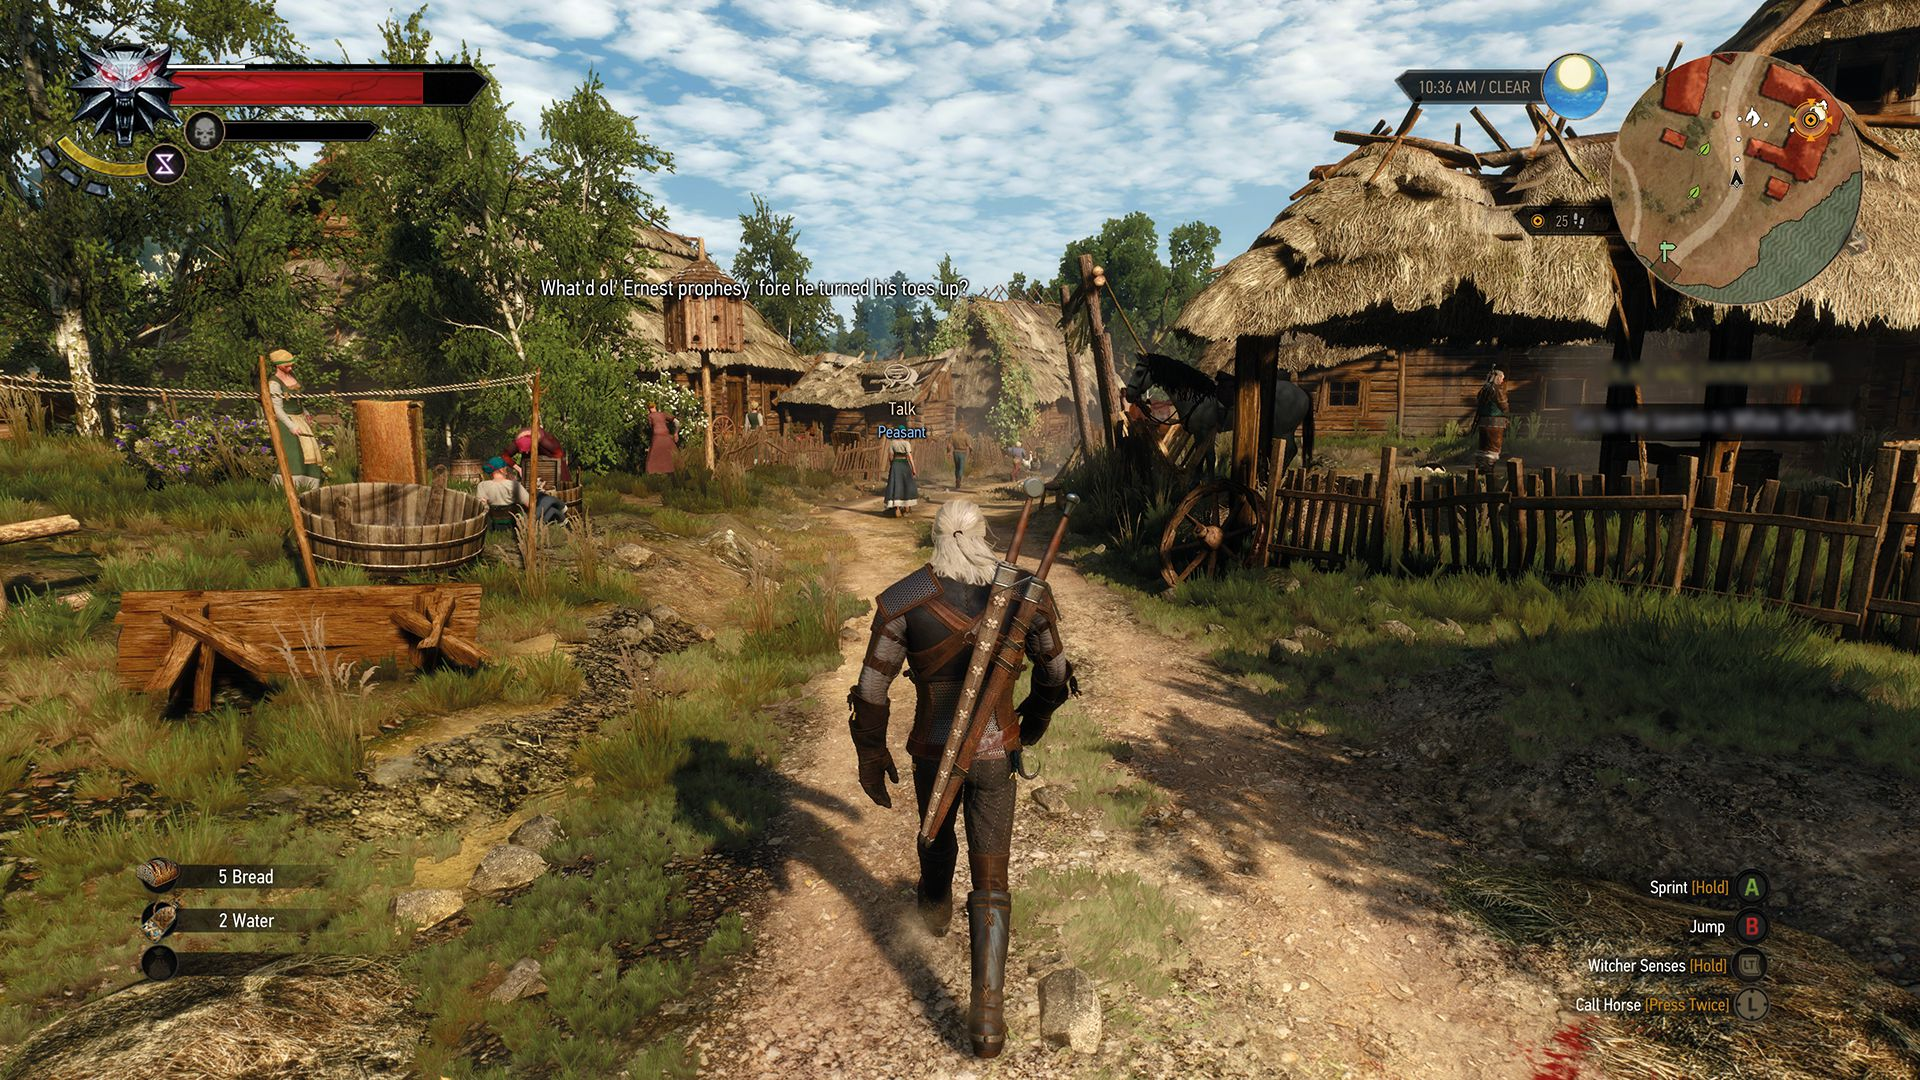 the_witcher_3_wild_hunt_wonder_how_much_theyd_charge_to_wash_my_unspeakables_1430900935